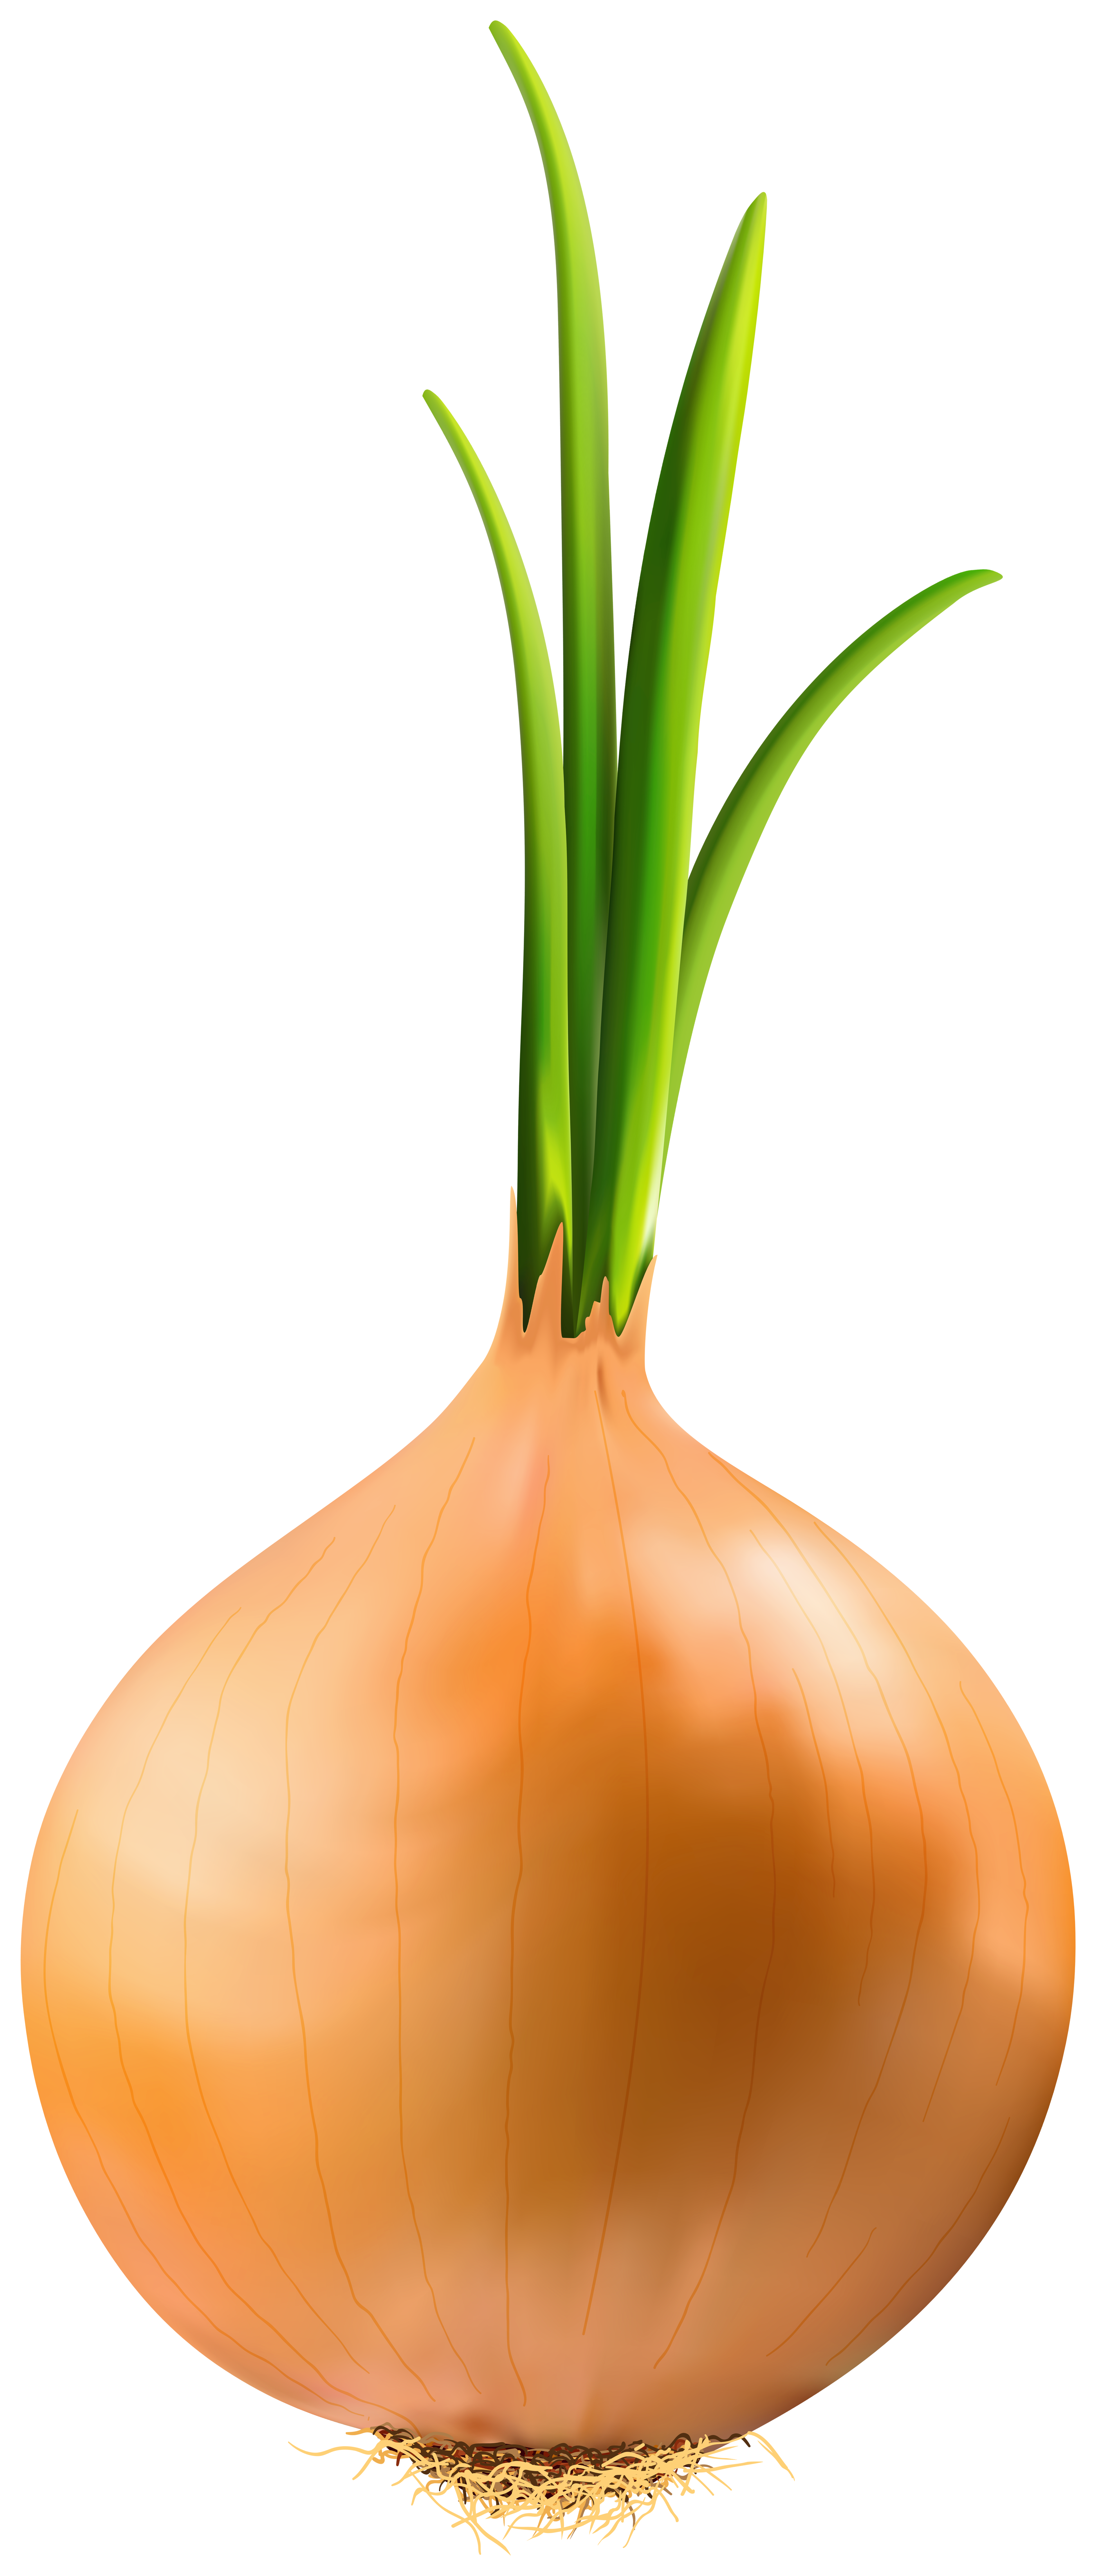 stock Onion clipart. Png image gallery yopriceville.